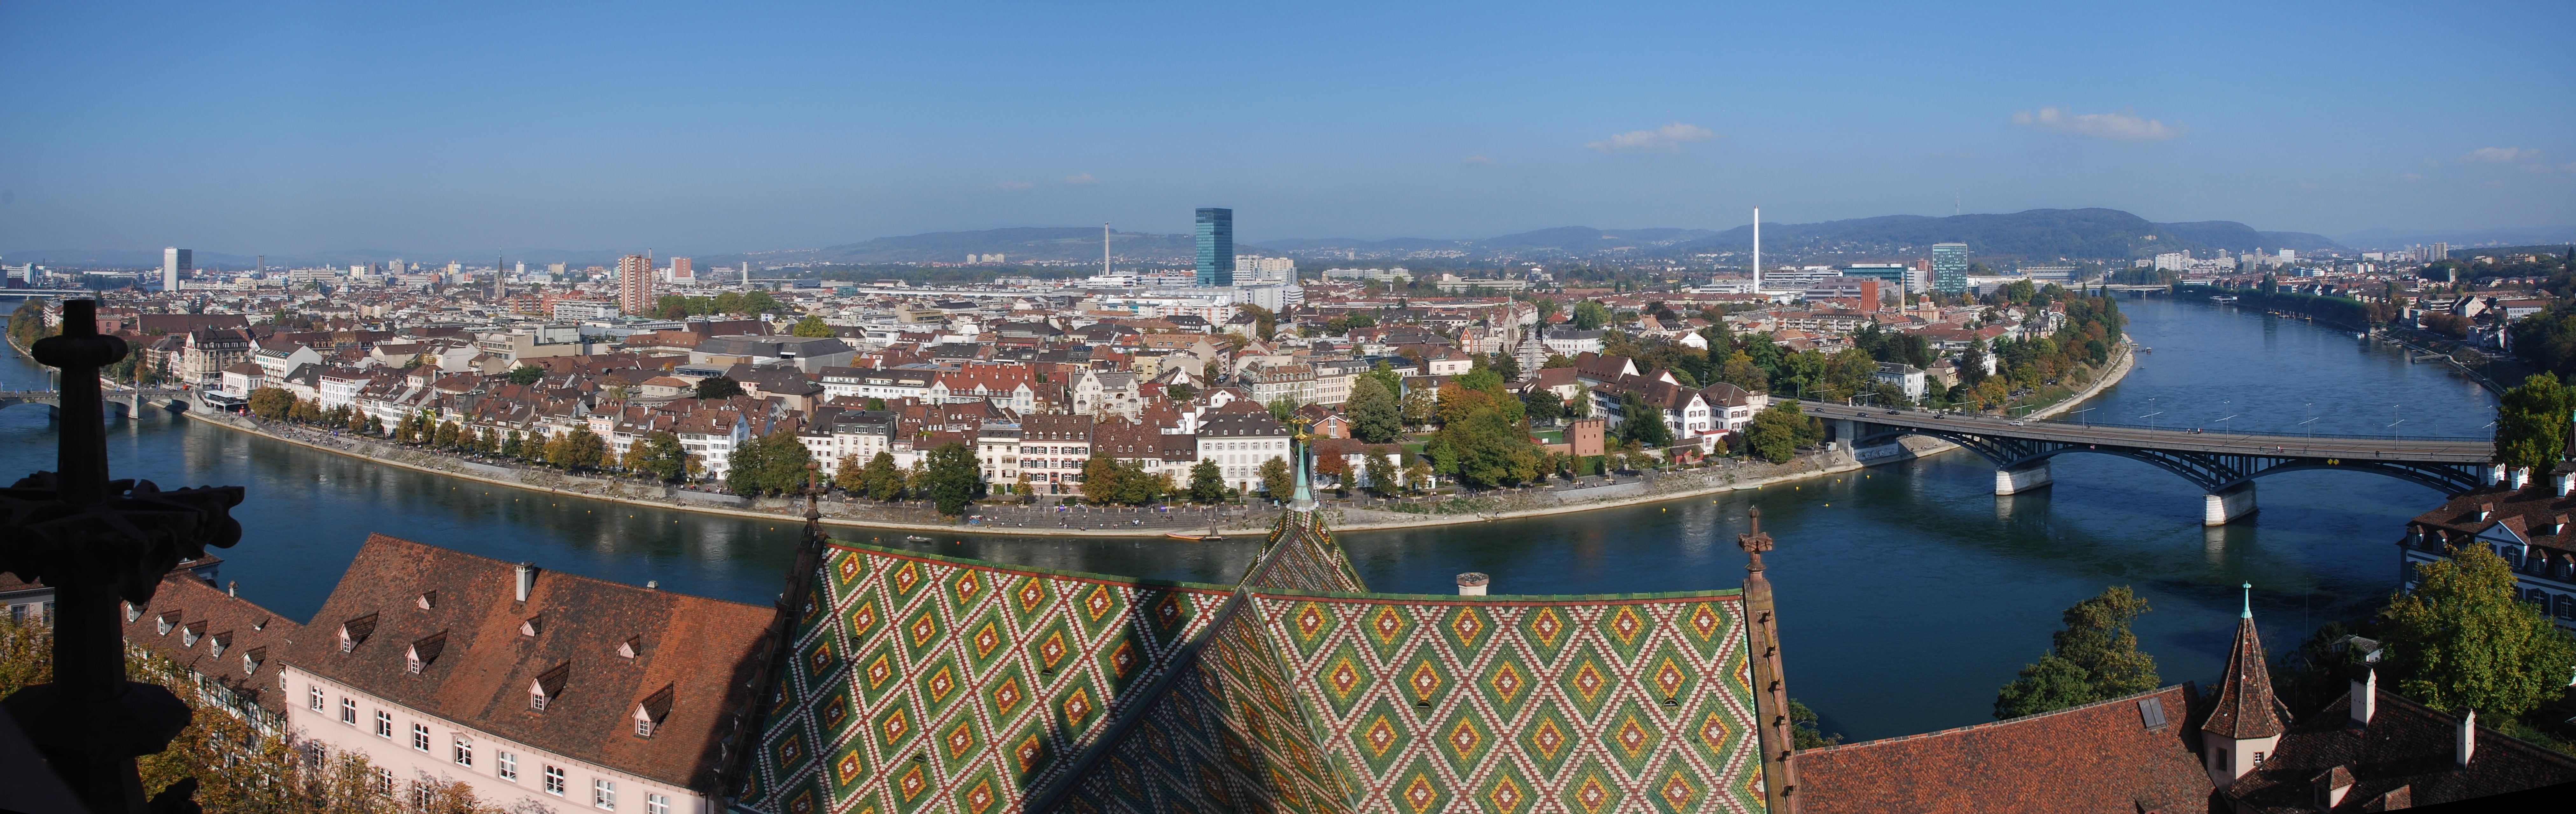 Basel New City Landscape